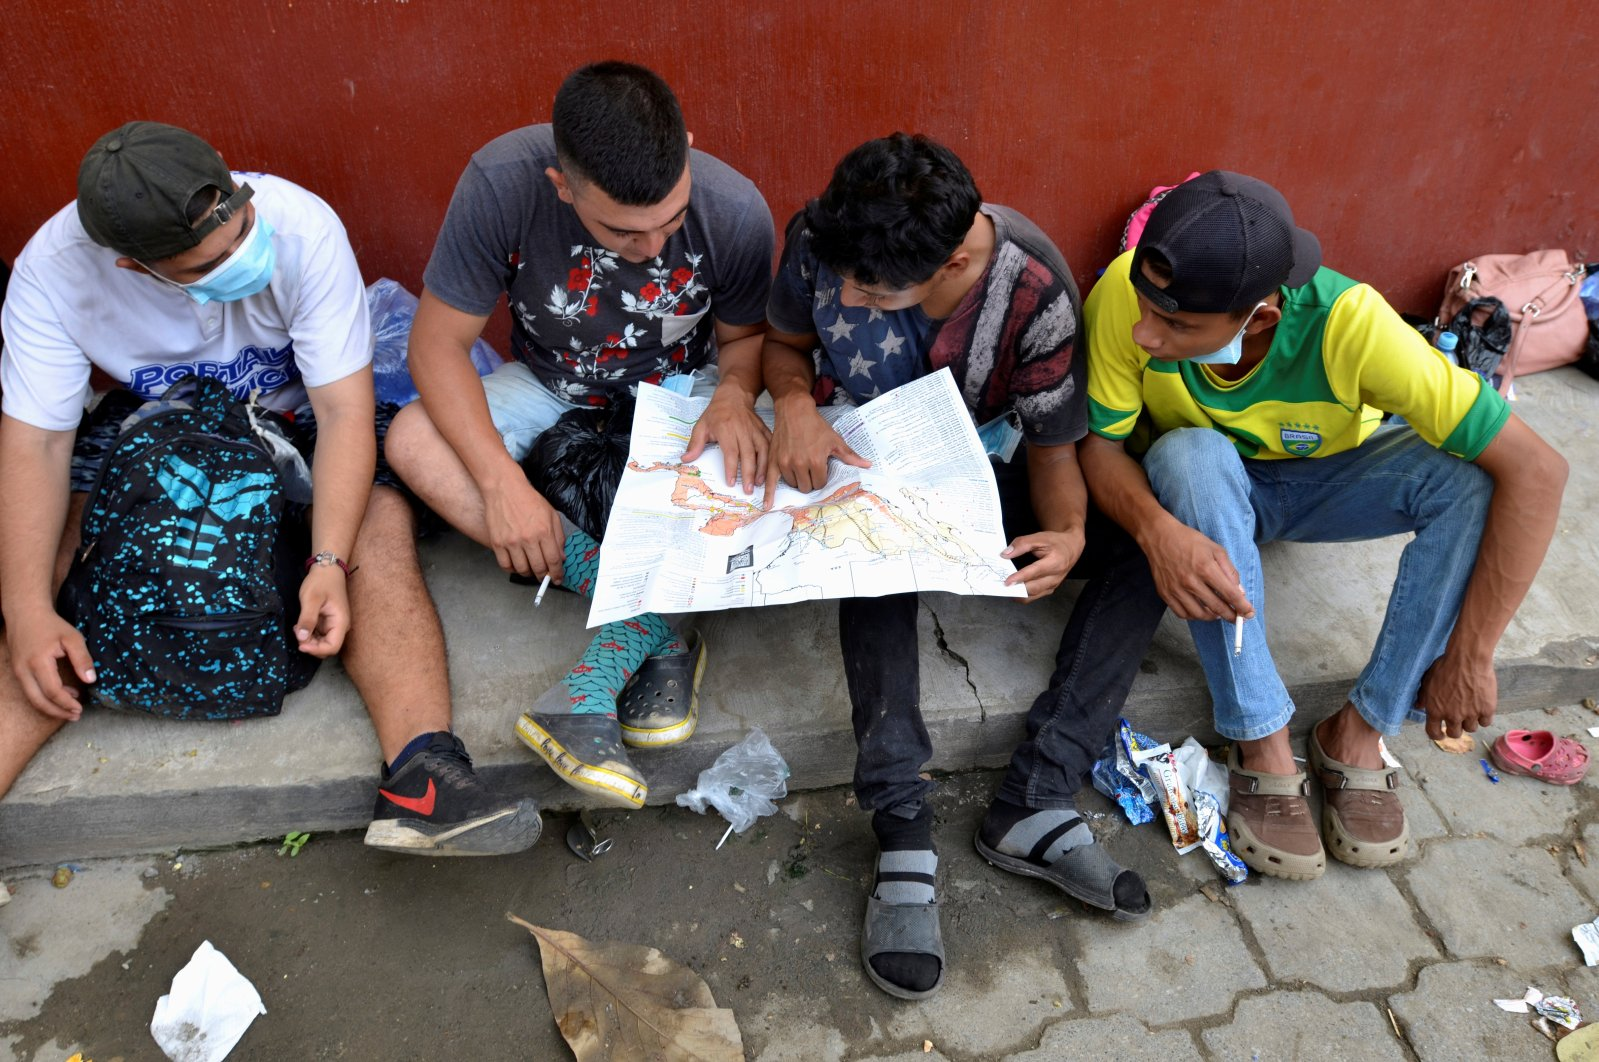 A group of Honduran migrants who are trying to reach the U.S., look at a Central America and Mexico map outside a migrant shelter as they wait to move toward the Guatemala and Mexico border, in Tecun Uman, Guatemala, Oct. 3, 2020. (Reuters Photo)